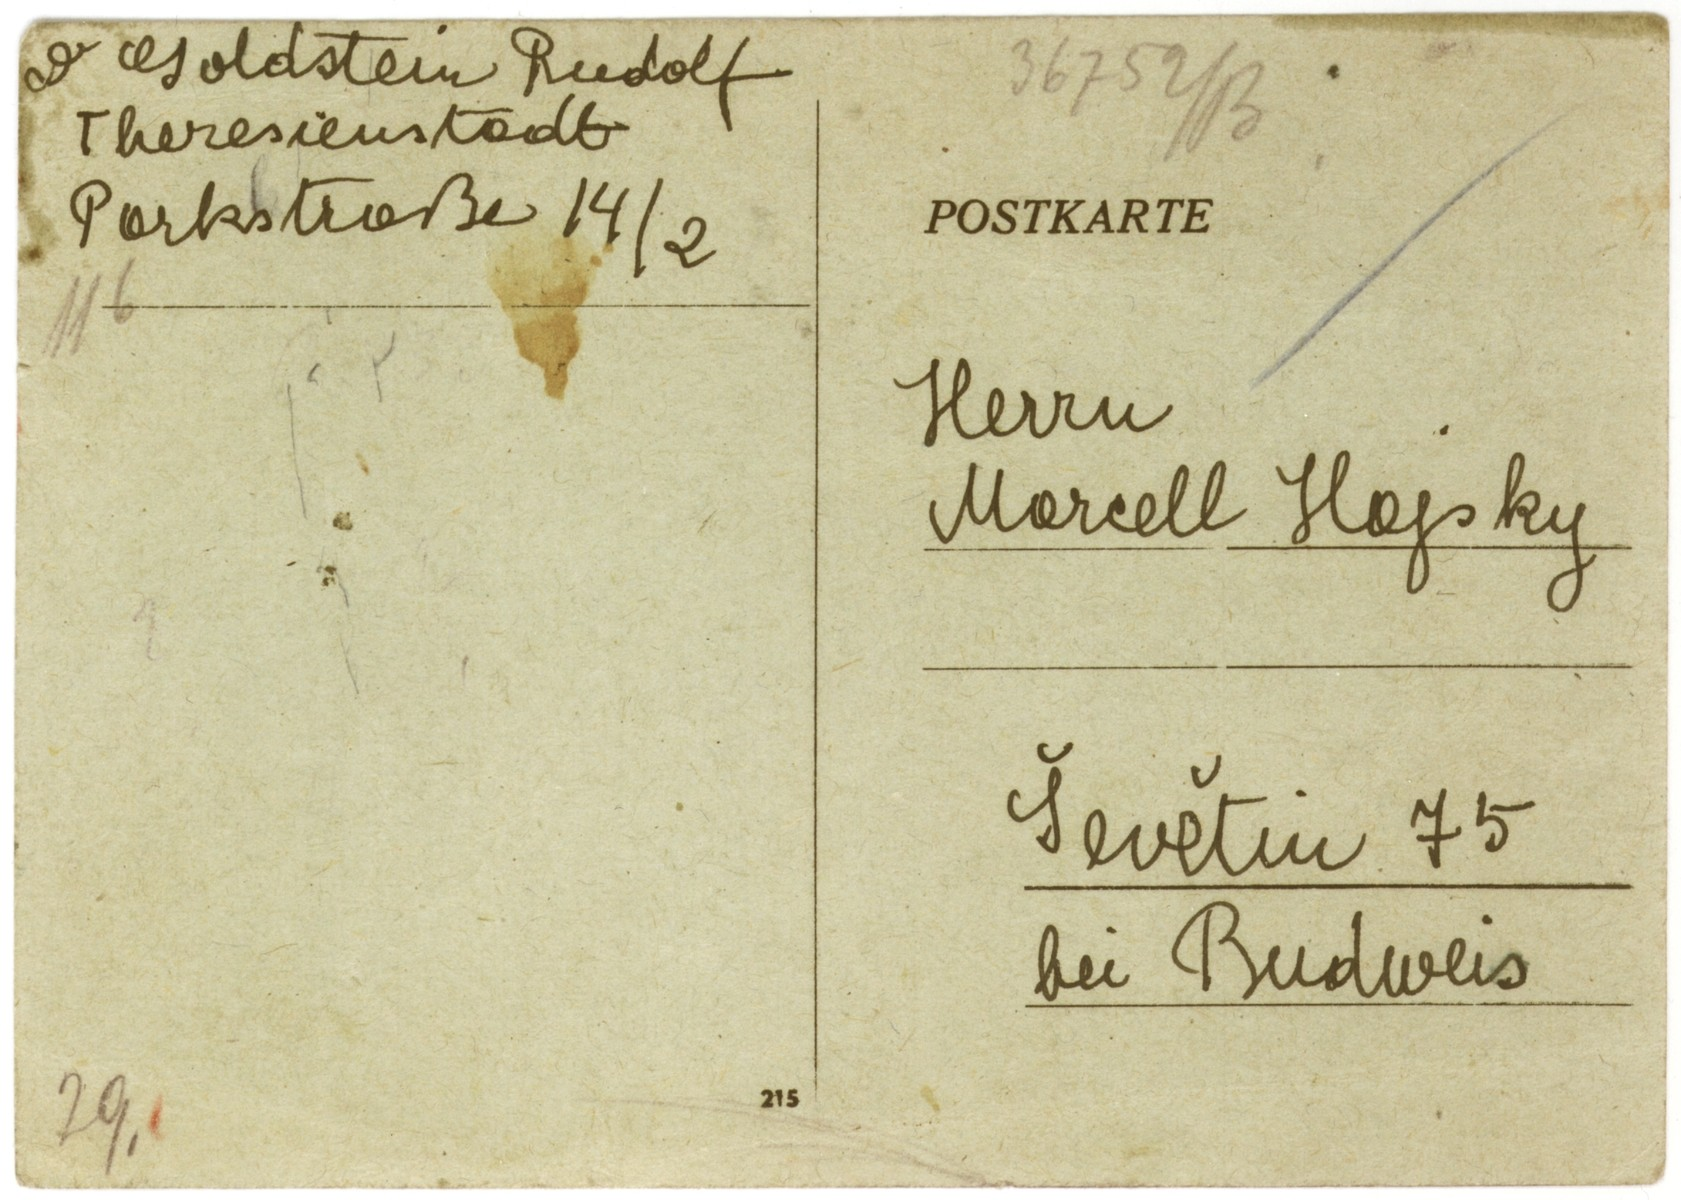 A postcard sent to Marcel Hajsky by his uncle, Rudolf Goldstein, from the Theresienstadt concentration camp.  Rudolf writes that Marcel's mother, Anna (Goldstein) Hajsky, and grandmother, Fanny Goldstein, are healthy, but that his aunt, Marie (Goldstein) Klepetar, is no longer in Theresienstadt.  Rudolf also thanks Marcel for the care package he sent them and writes that Anna would like to receive photographs of Marcel and his brother, Jan.  Fanny sends the children her love.  Marcel and Jan were able to escape deportation because their father, Cenek Hajsky, was not Jewish.